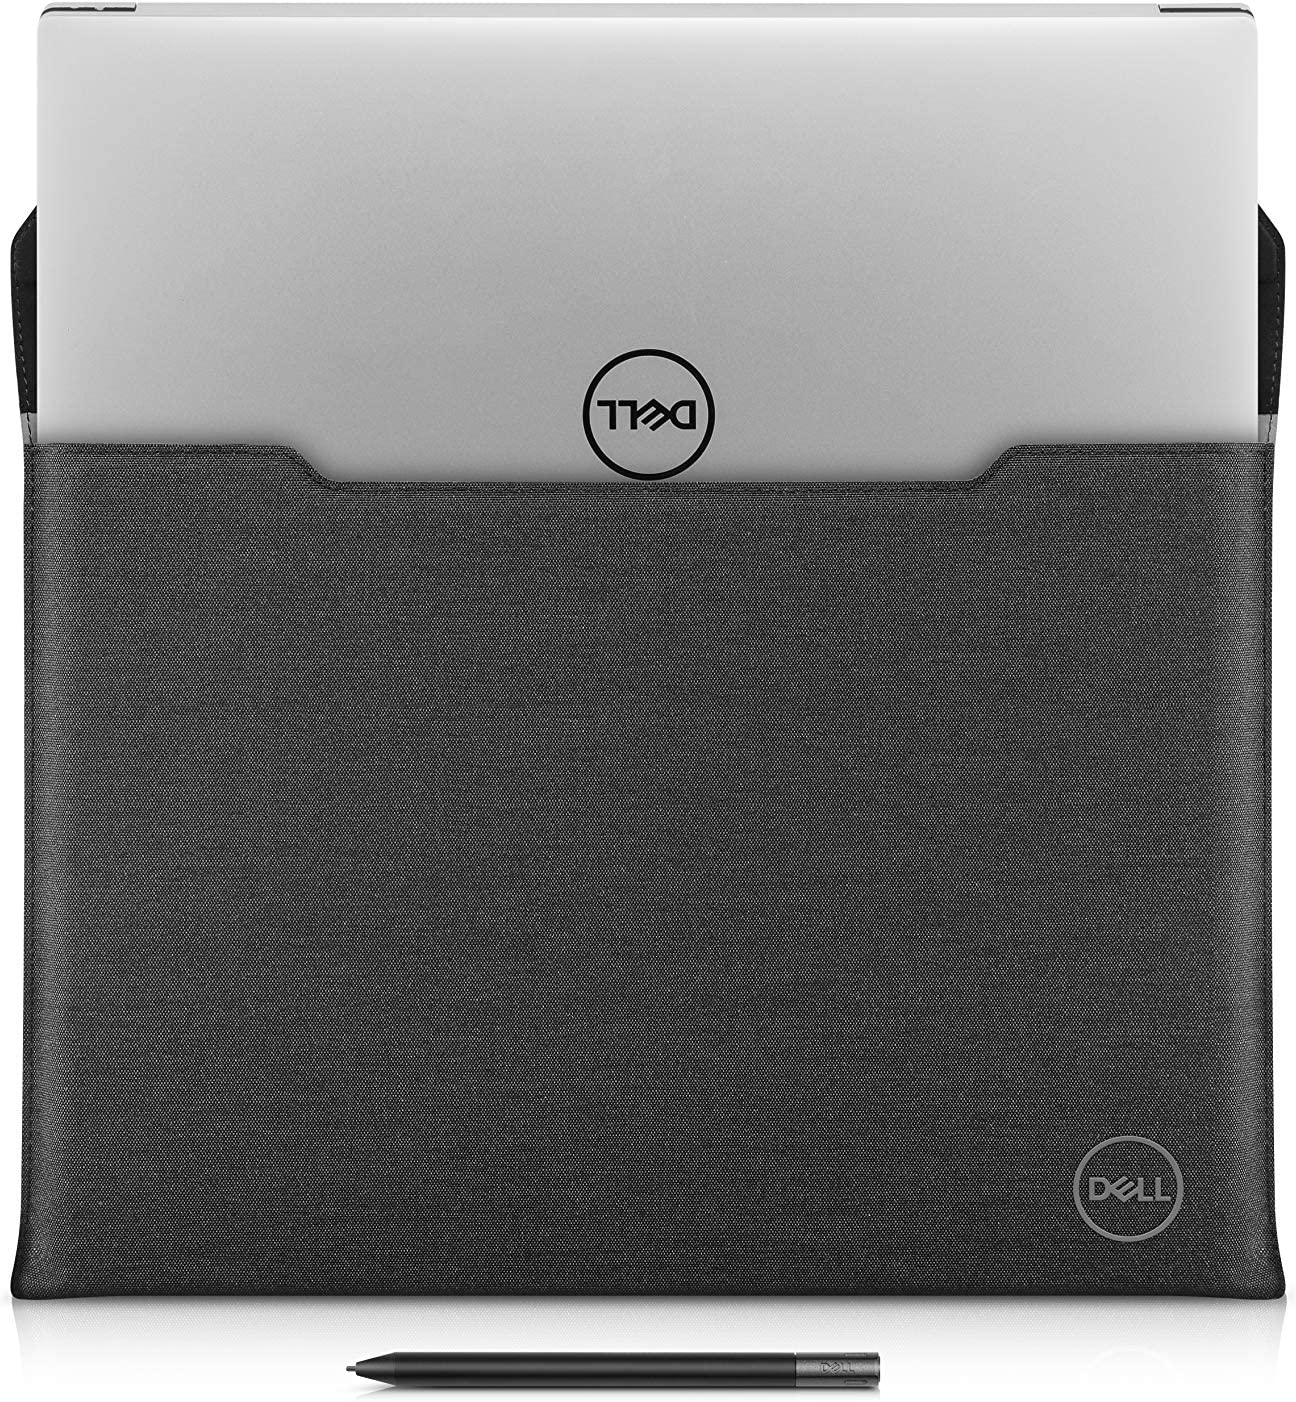 Dell Premier Sleeve 17 17 inch Laptop Case - Magnetic Snap Button Black Leather with Grey Heather Exterior - for Precision Mobile Workstation 5750, XPS 17 9700